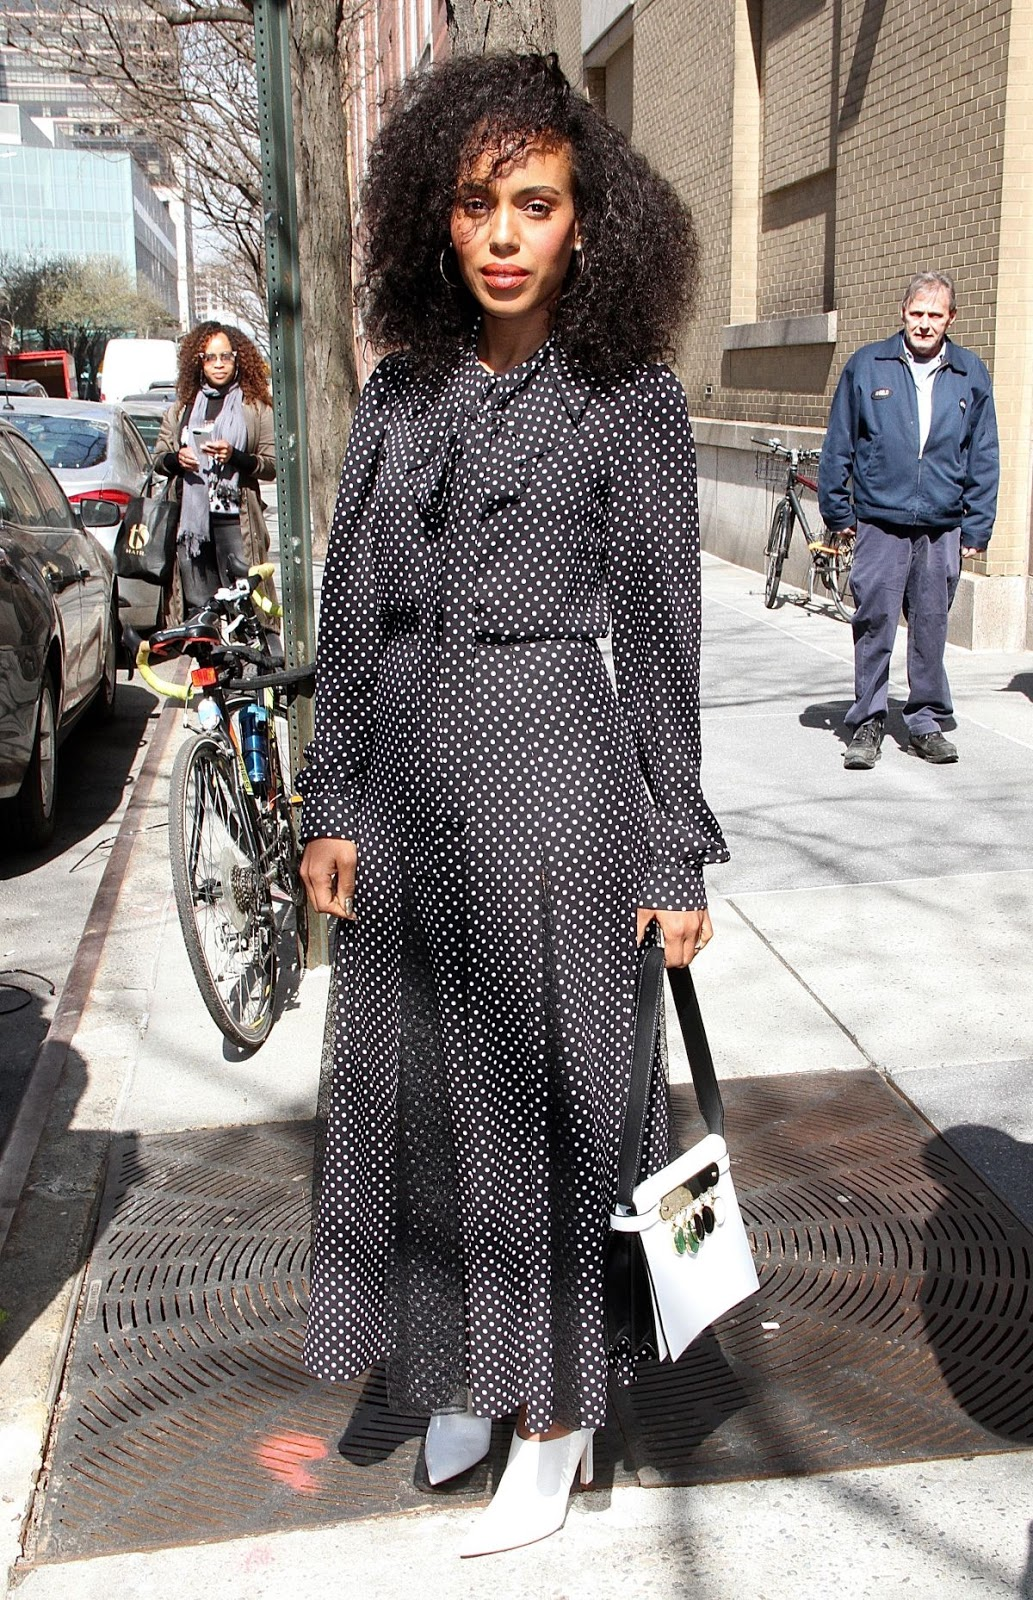 Kerry Washington is polkadot chic in New York